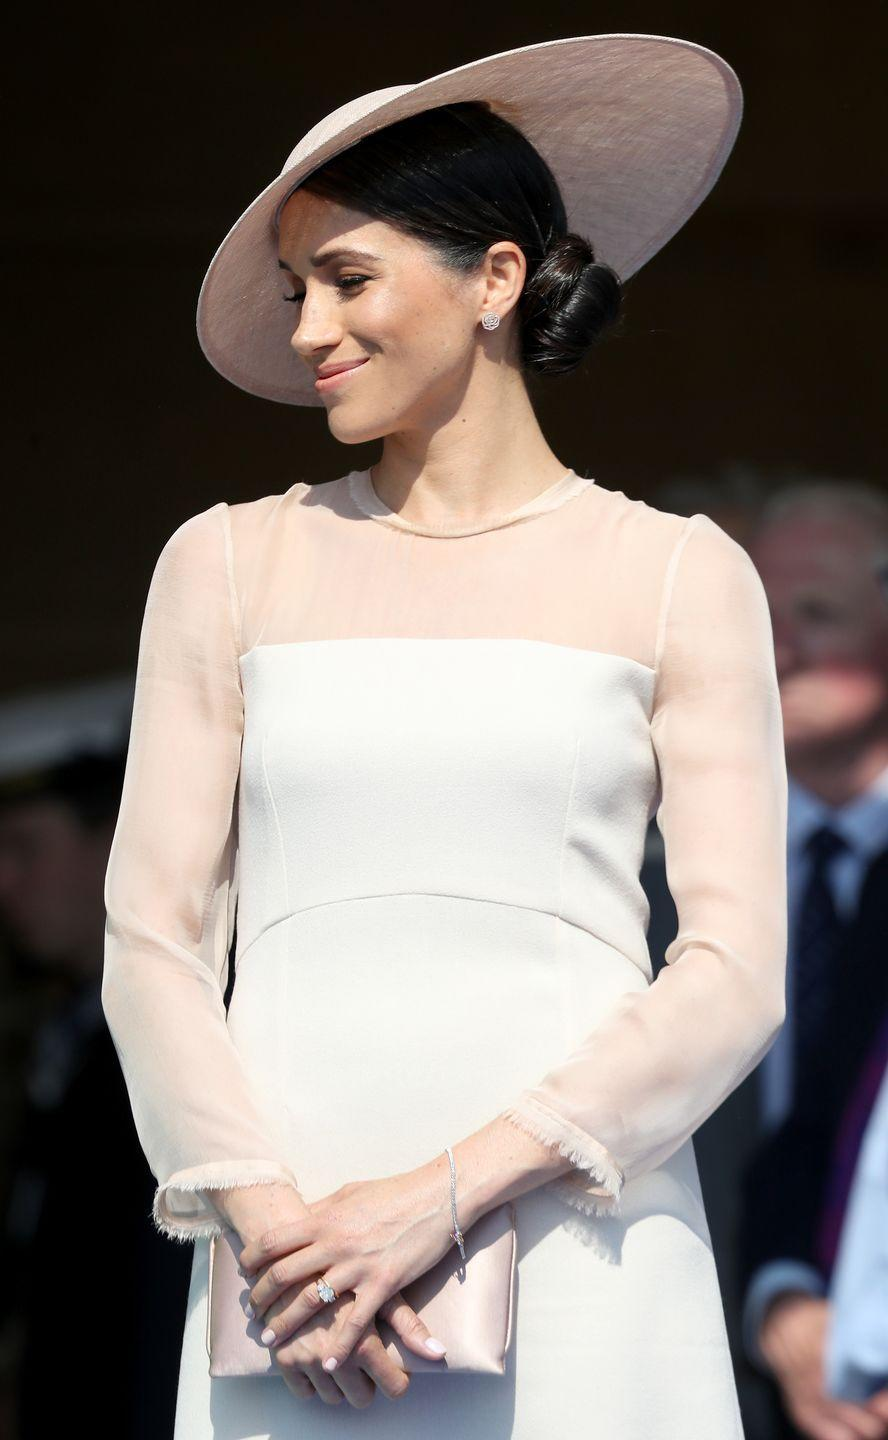 """<p>For her <a href=""""https://www.townandcountrymag.com/style/fashion-trends/a20871232/meghan-markle-blush-dress-first-post-royal-wedding-appearance-garden-party/"""" rel=""""nofollow noopener"""" target=""""_blank"""" data-ylk=""""slk:first official appearance as a royal"""" class=""""link rapid-noclick-resp"""">first official appearance as a royal</a>, Meghan chose <a href=""""https://go.redirectingat.com?id=74968X1596630&url=https%3A%2F%2Fwww.matchesfashion.com%2Fus%2Fproducts%2F1195653&sref=https%3A%2F%2Fwww.townandcountrymag.com%2Fstyle%2Ffashion-trends%2Fg3272%2Fmeghan-markle-preppy-style%2F"""" rel=""""nofollow noopener"""" target=""""_blank"""" data-ylk=""""slk:a blush Goat dress"""" class=""""link rapid-noclick-resp"""">a blush Goat dress</a> paired with a bespoke Philip Treacy hat.<br> </p><p><em>GOAT Flavia silk-crepe pencil dress, £590</em><br><a class=""""link rapid-noclick-resp"""" href=""""https://go.redirectingat.com?id=74968X1596630&url=https%3A%2F%2Fwww.goatfashion.com%2F&sref=https%3A%2F%2Fwww.townandcountrymag.com%2Fstyle%2Ffashion-trends%2Fg3272%2Fmeghan-markle-preppy-style%2F"""" rel=""""nofollow noopener"""" target=""""_blank"""" data-ylk=""""slk:SHOP NOW"""">SHOP NOW</a></p>"""